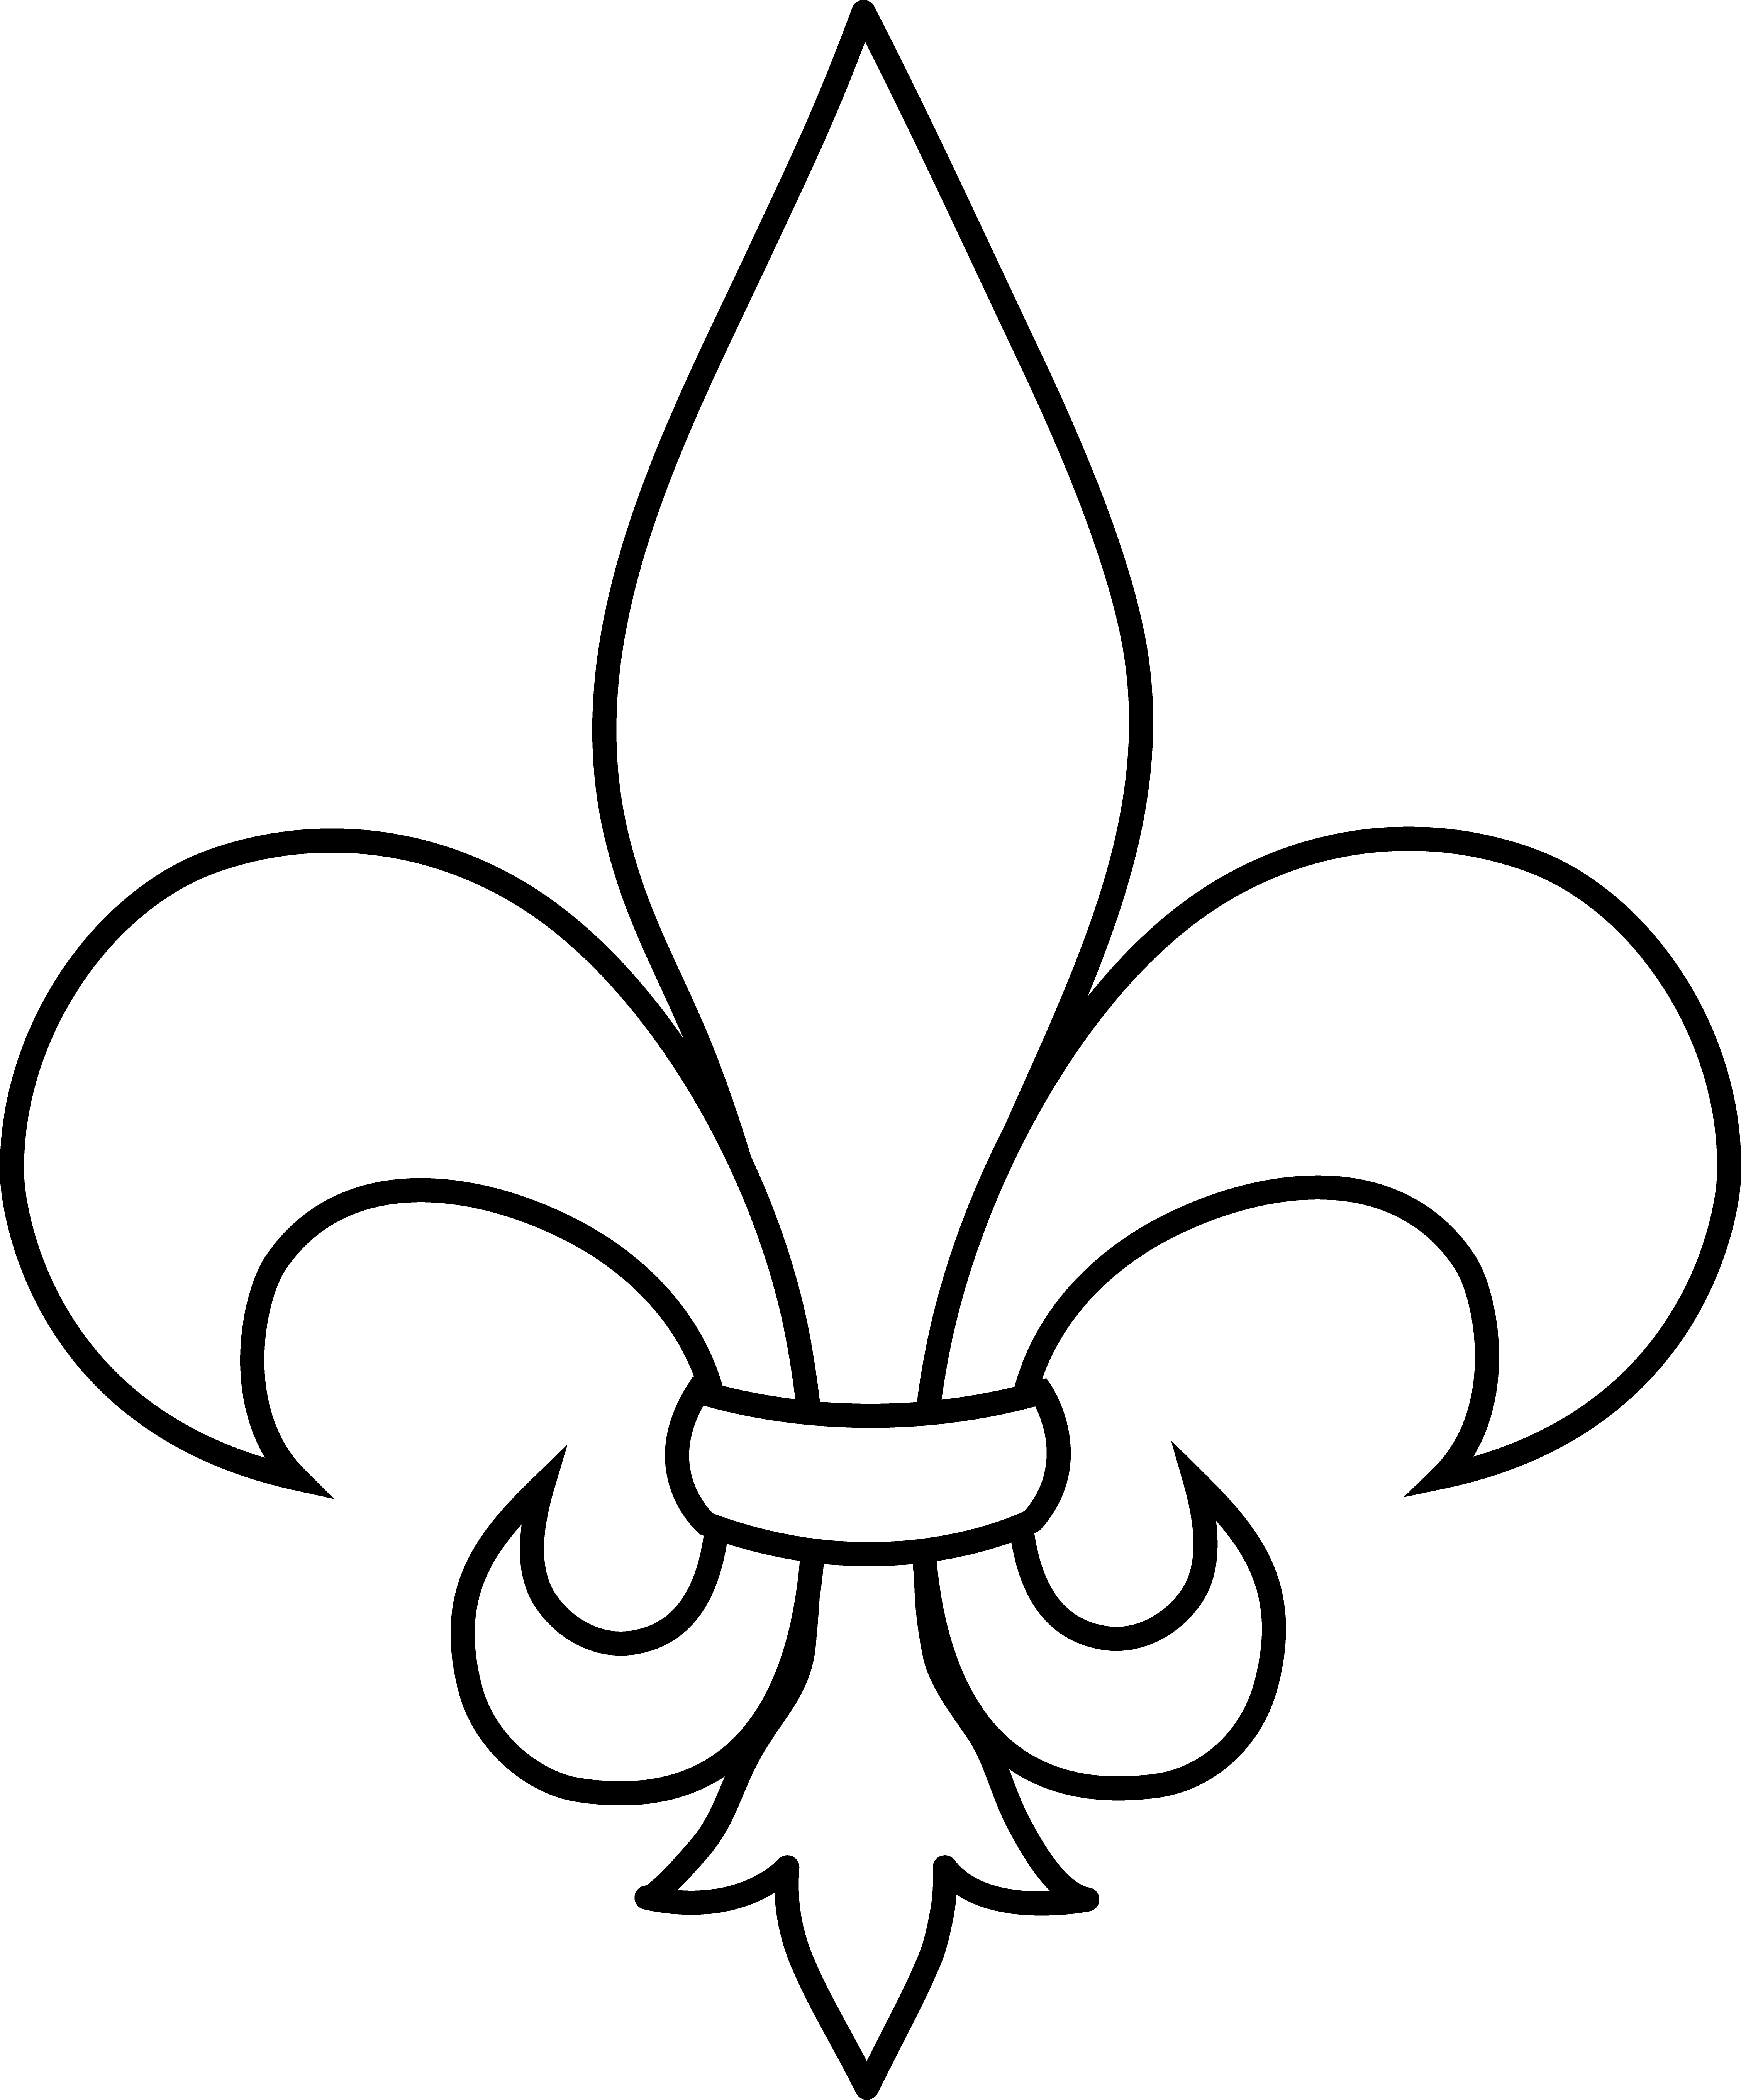 Fleur-de-lis clipart #1, Download drawings